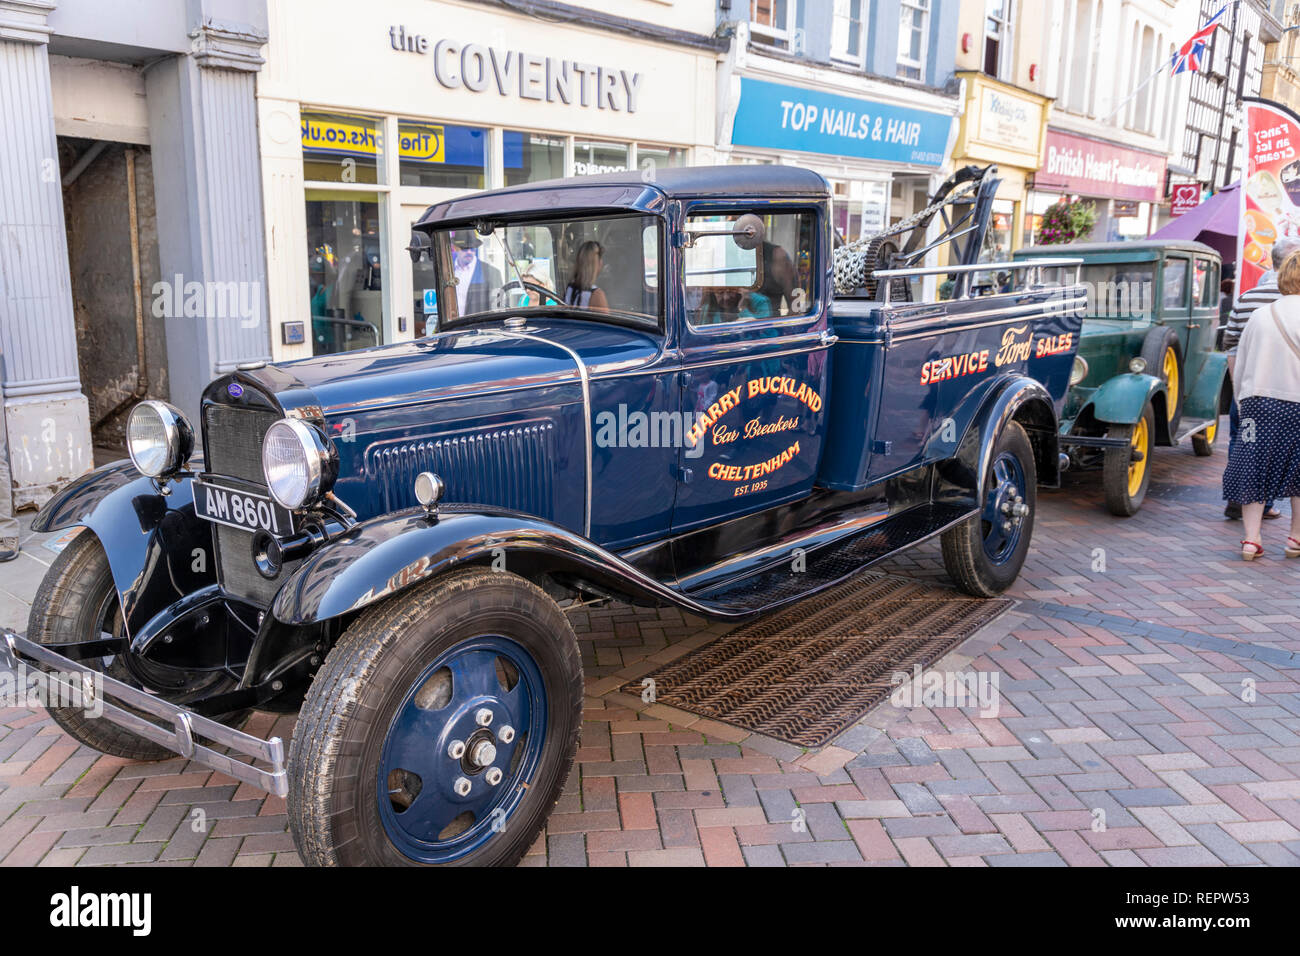 Harry Bucklands old Ford breakdown & tow truck on display in Westgate Street during the Gloucester Goes Retro Festival in August 2018, Gloucester UK - Stock Image